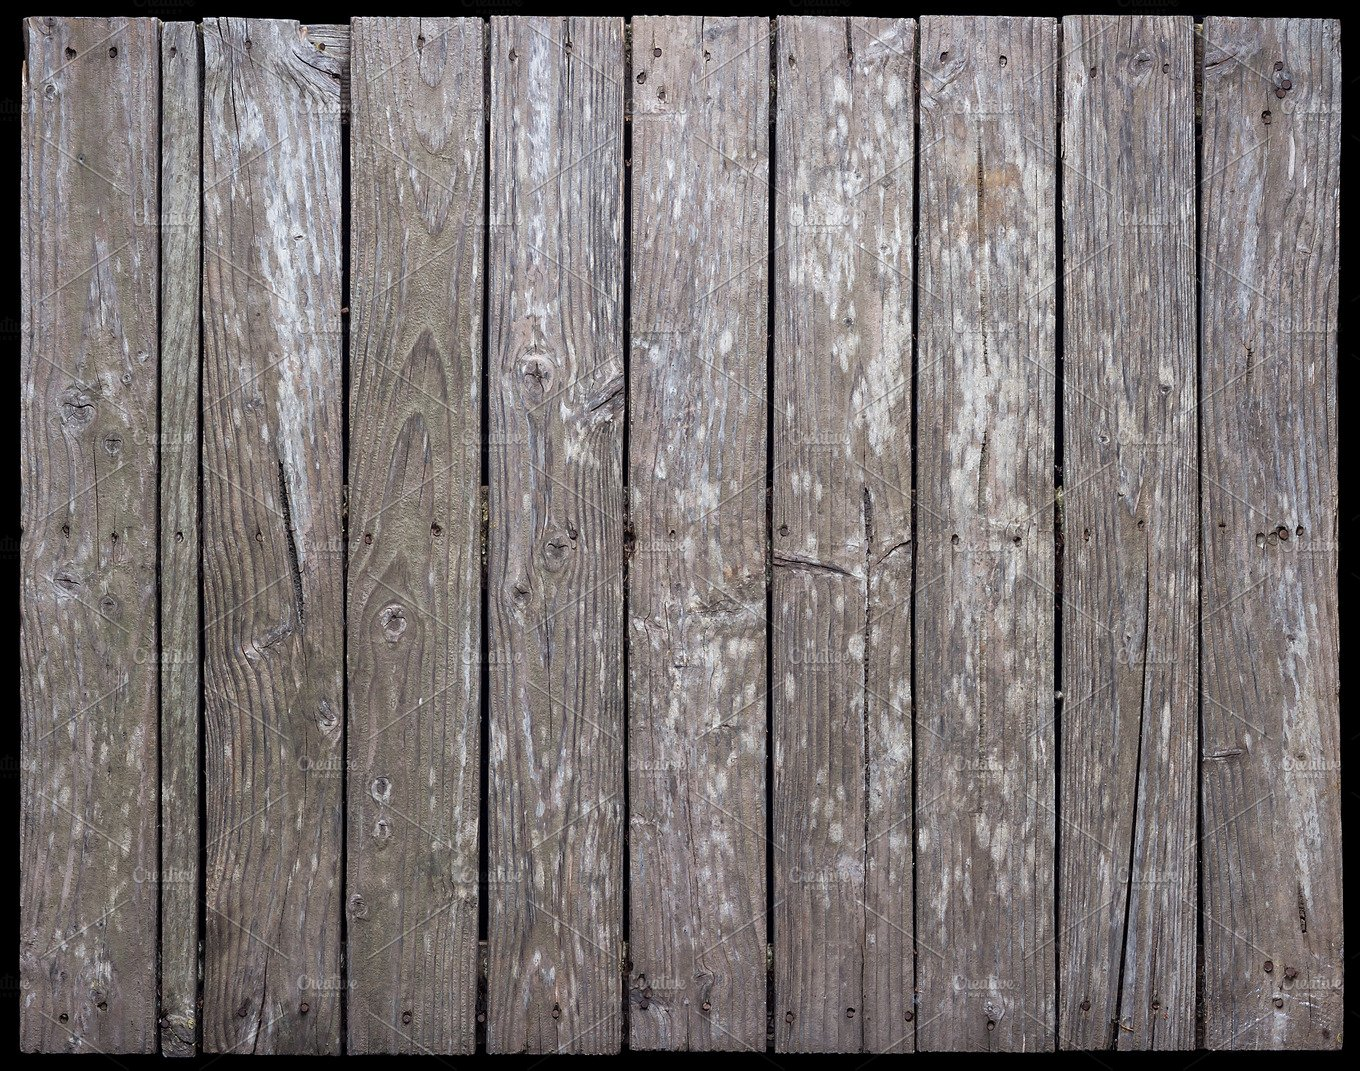 Board of wooden slats (23)   High-Quality Industrial Stock